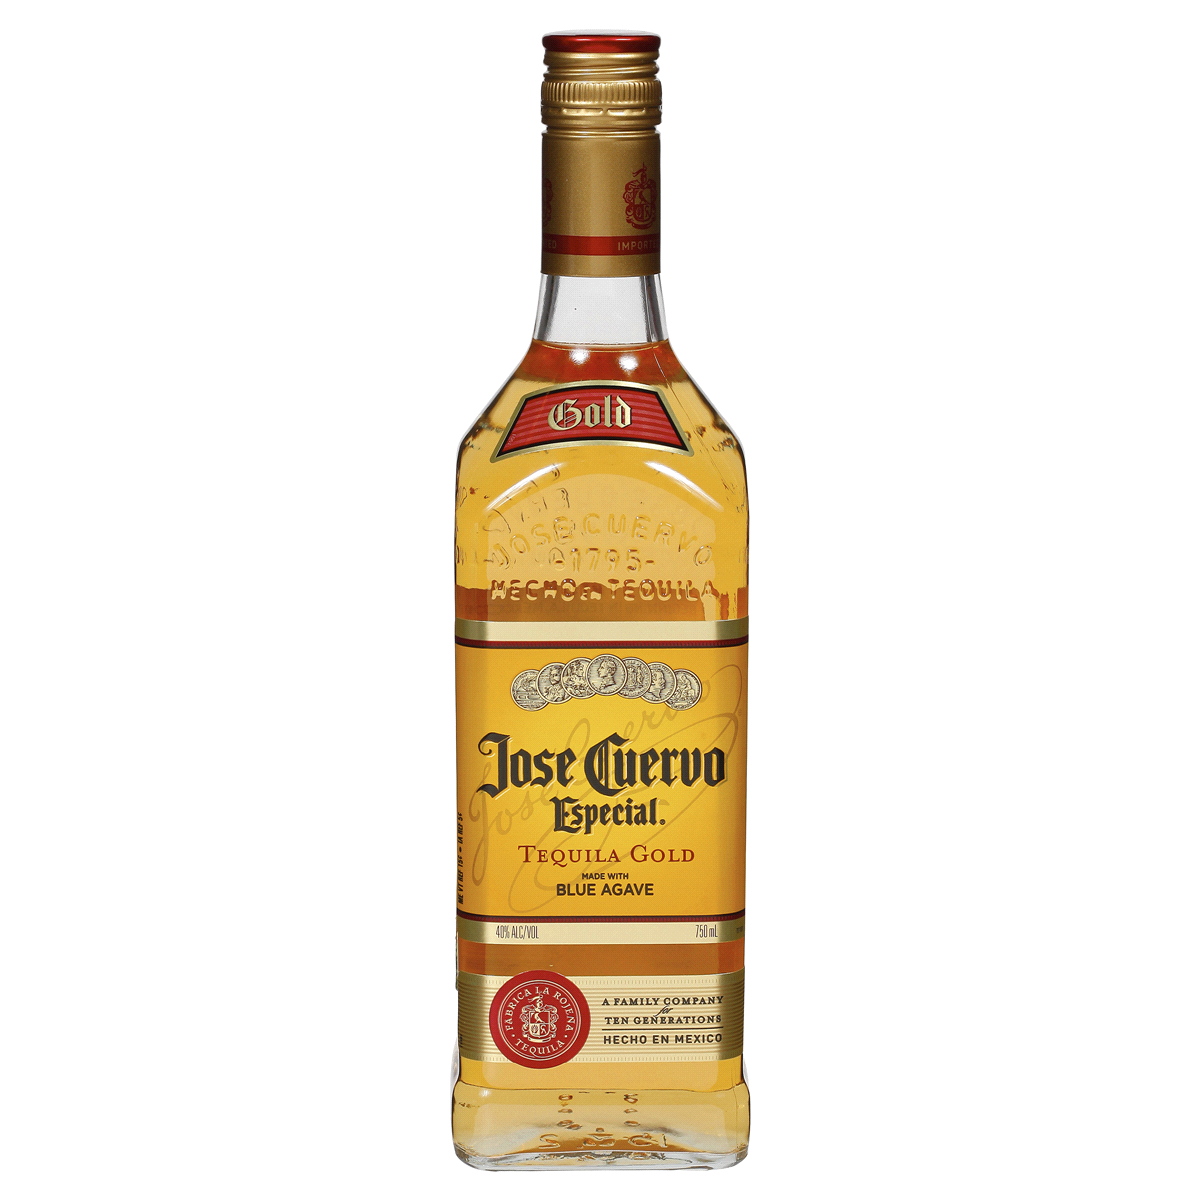 Jose Cuervo Especial Gold Tequila, 750 ml Tequila.